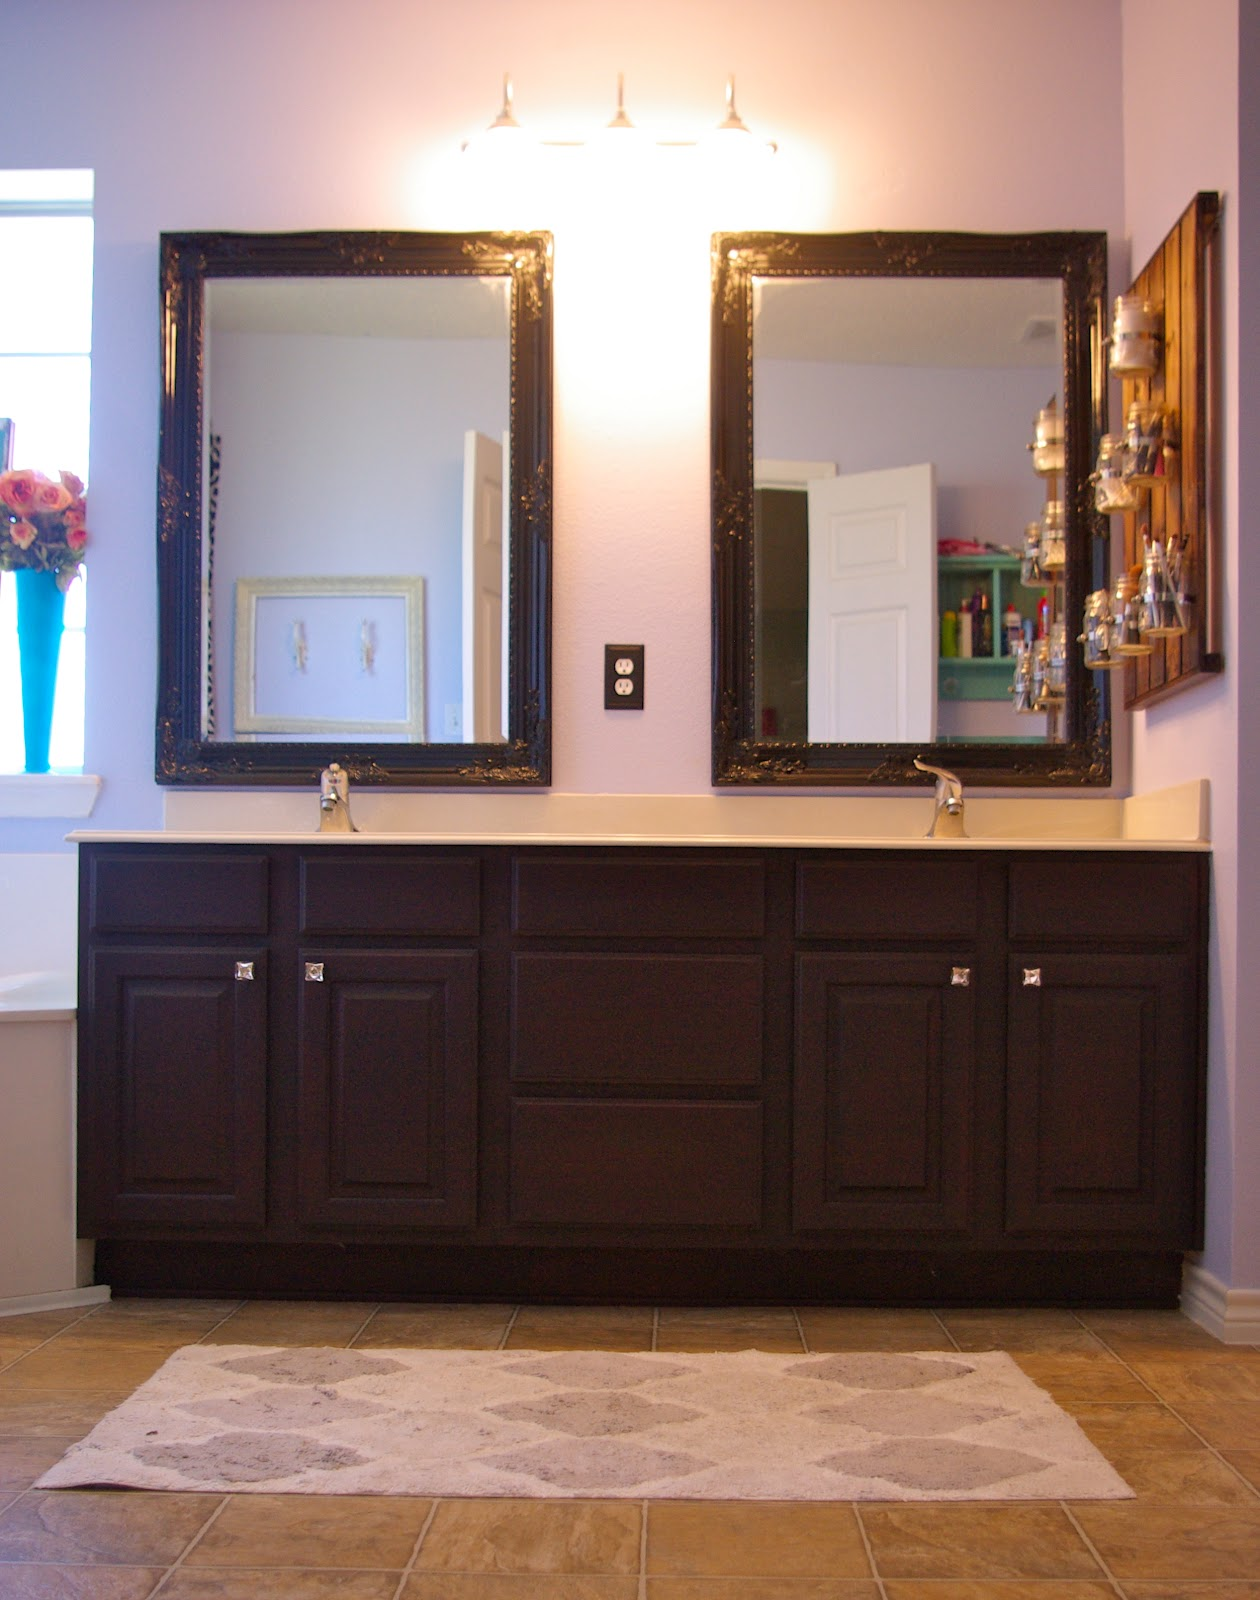 Refinished Bathroom Cabinets & Skinny Meg: Refinished Bathroom Cabinets